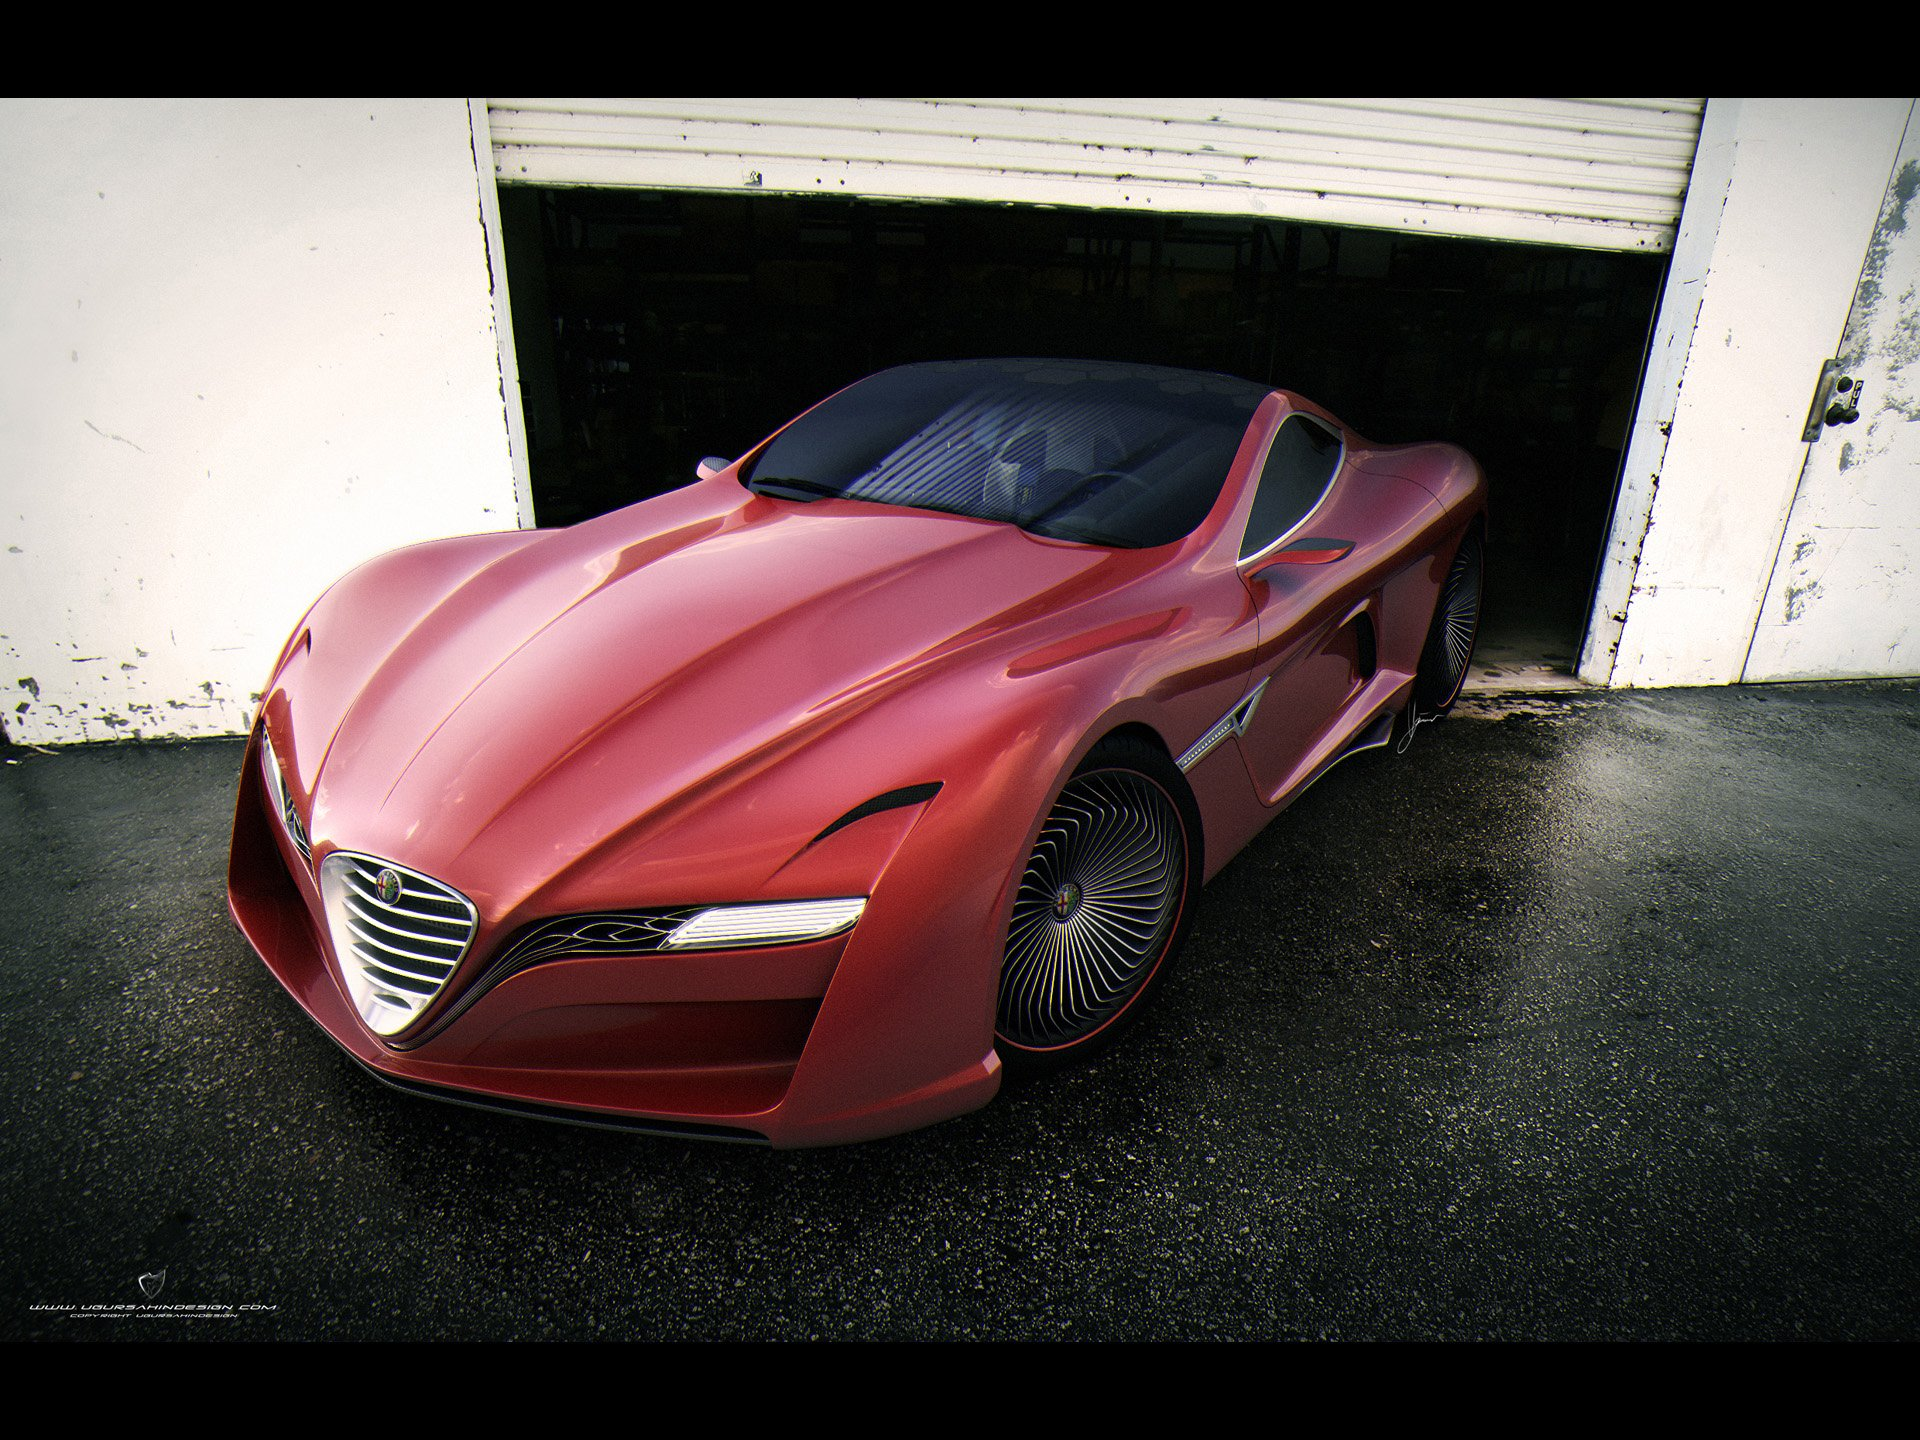 1920x1440 - Alfa Romeo 12C GTS Wallpapers 14